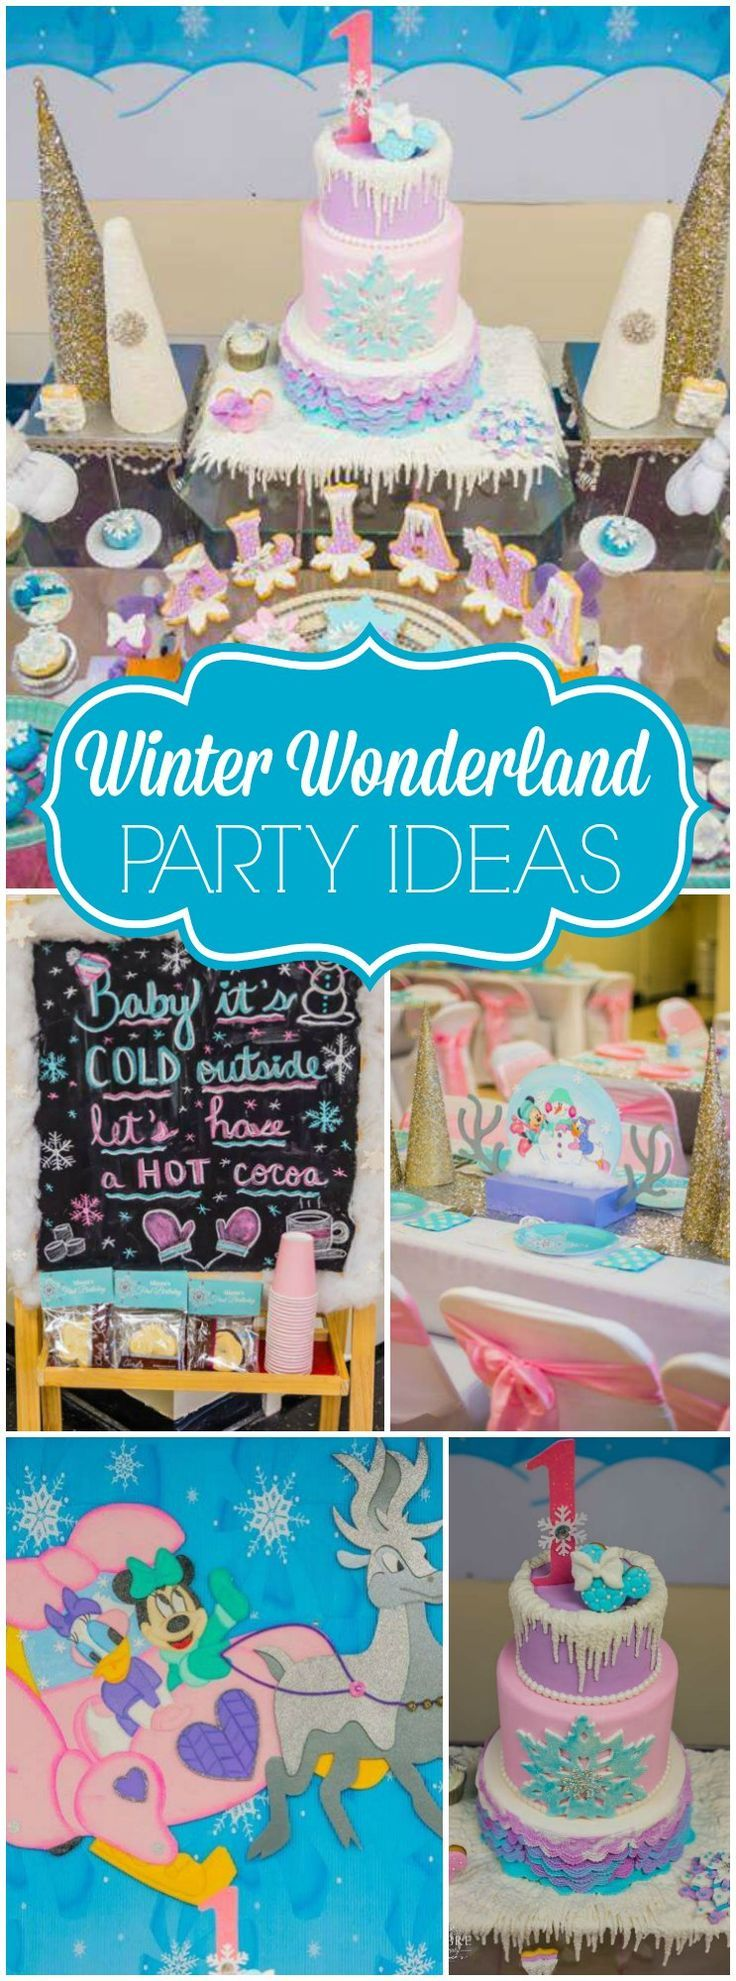 Minnie Mouse and Daisy Duck star at this winter wonderland party! See more party ideas at CatchMyParty.com!